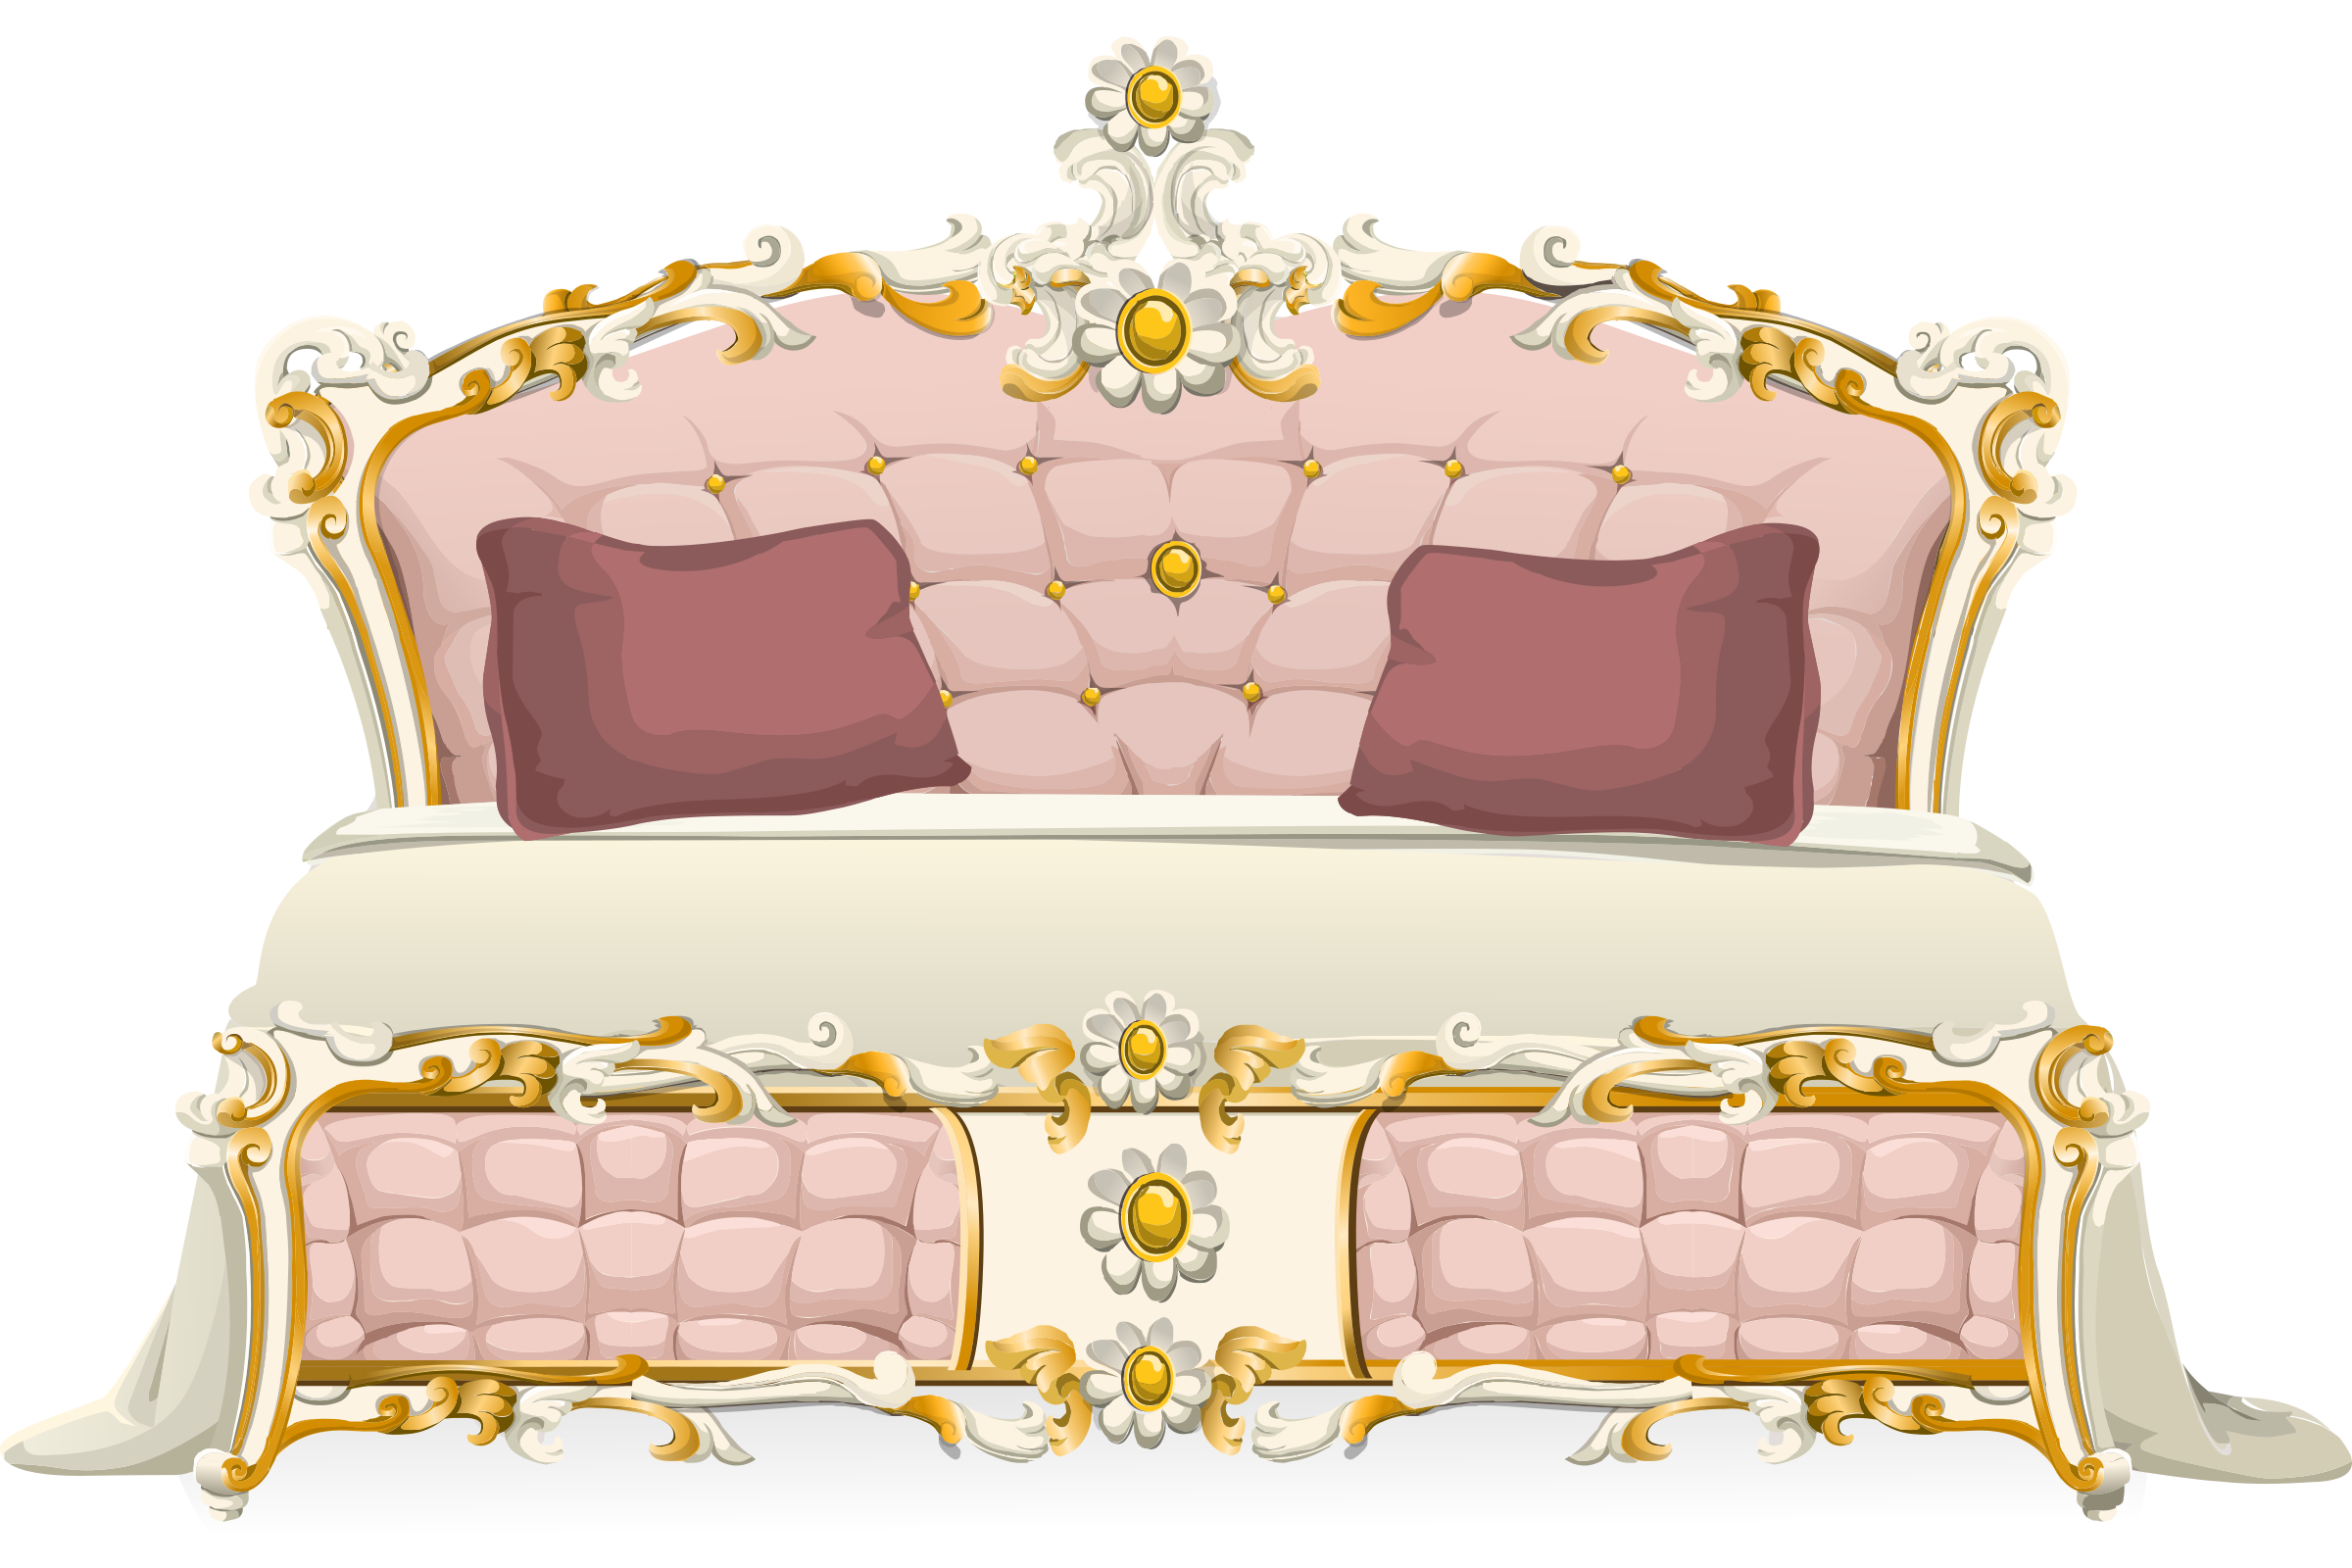 Dog on sofa clipart banner library Sofa : Sofa Pink Pillows Dog Bedspinkhairpink Login For ... banner library